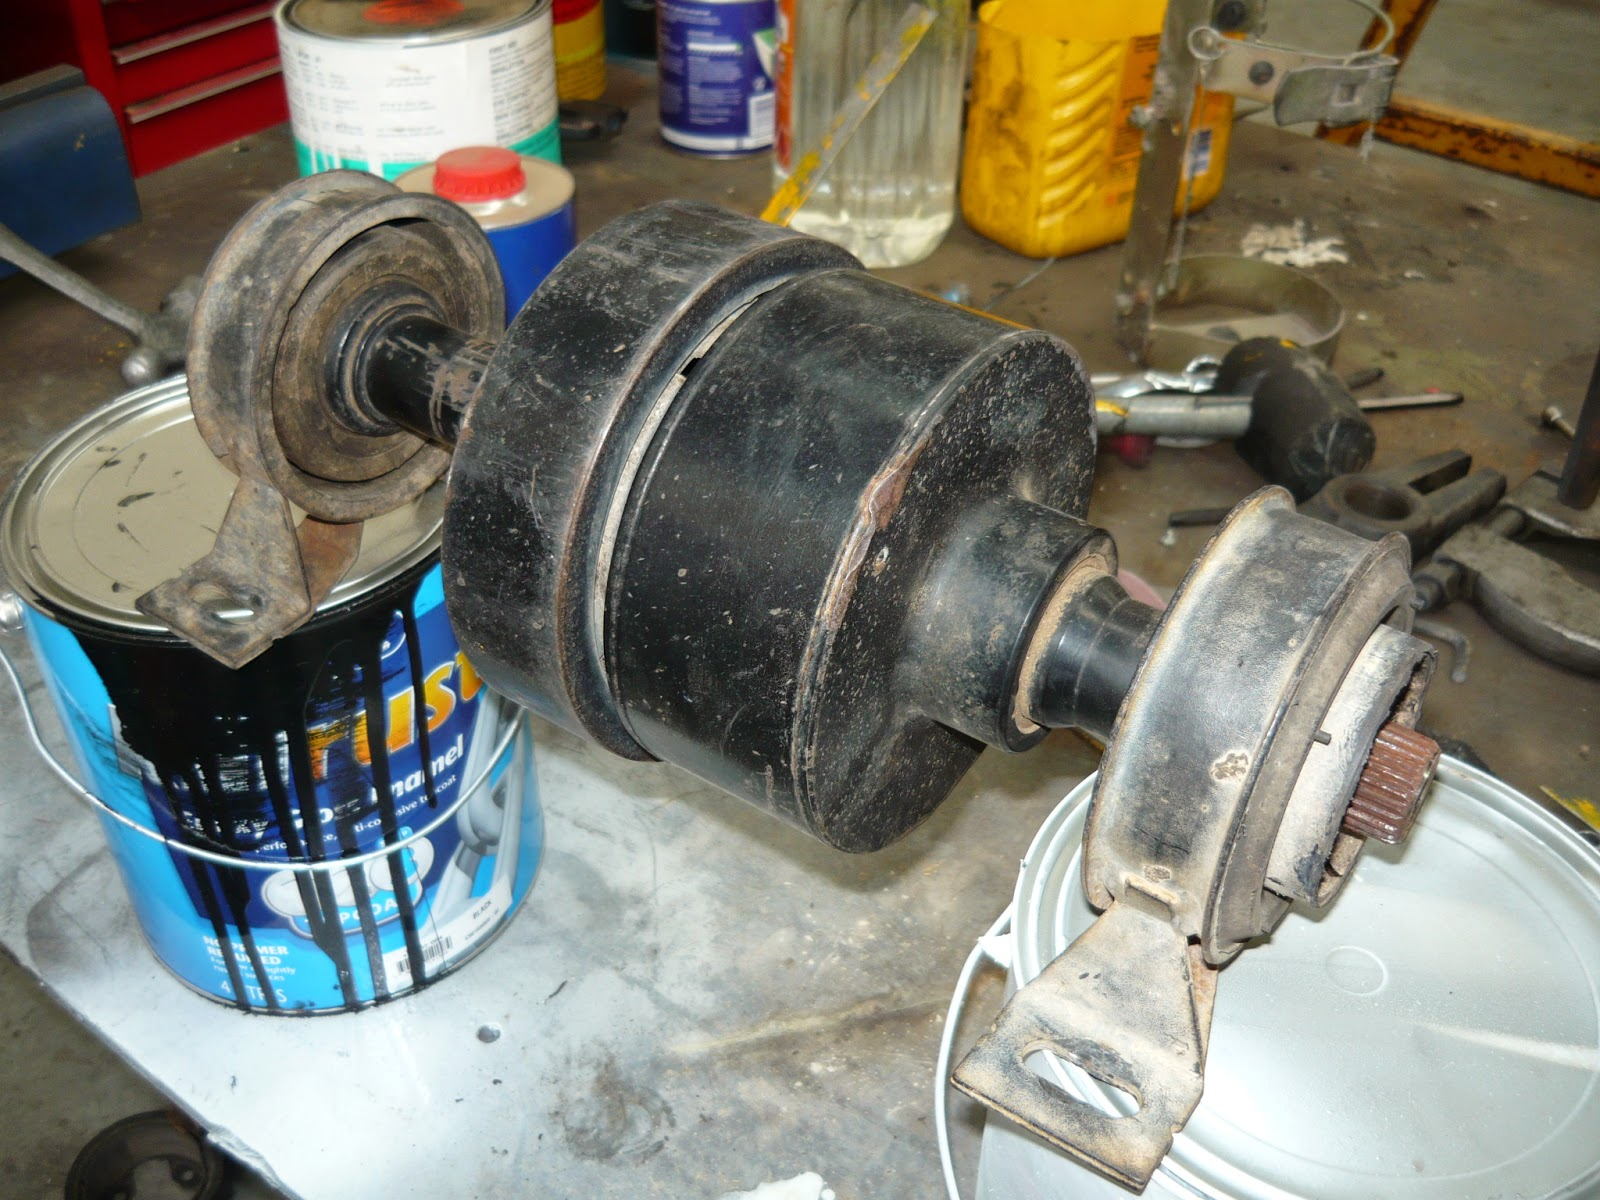 Christie Pacific Case History Land Rover Freelander Viscous Coupling The Vcu Unit Stripped Out Of Tail Shaft